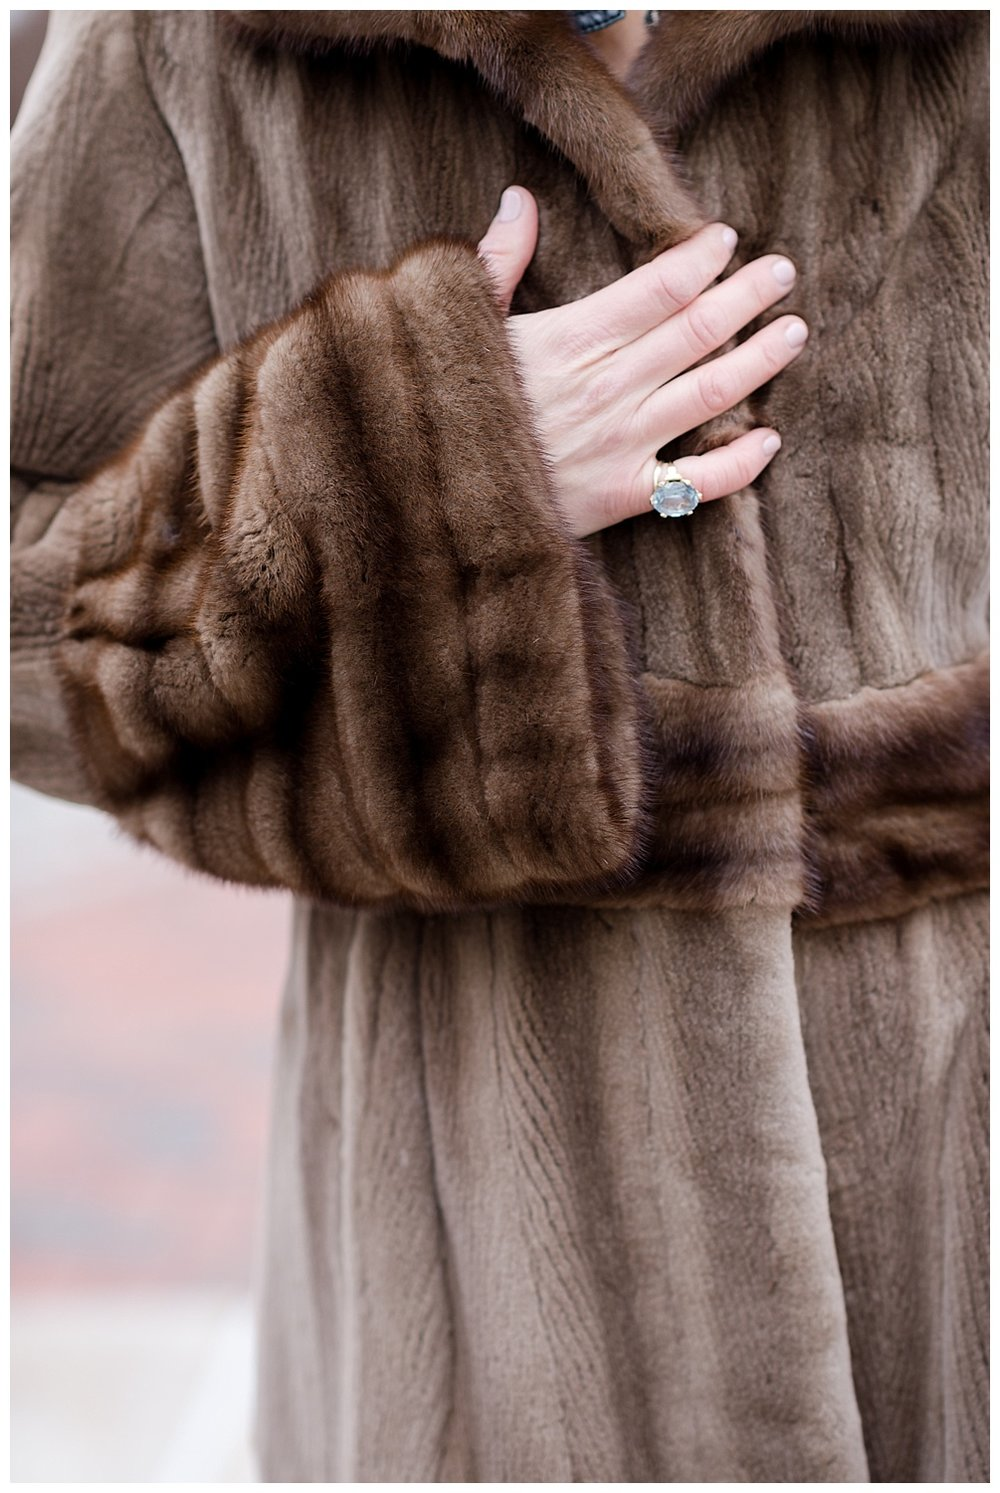 Leather and Fur_0314.jpg